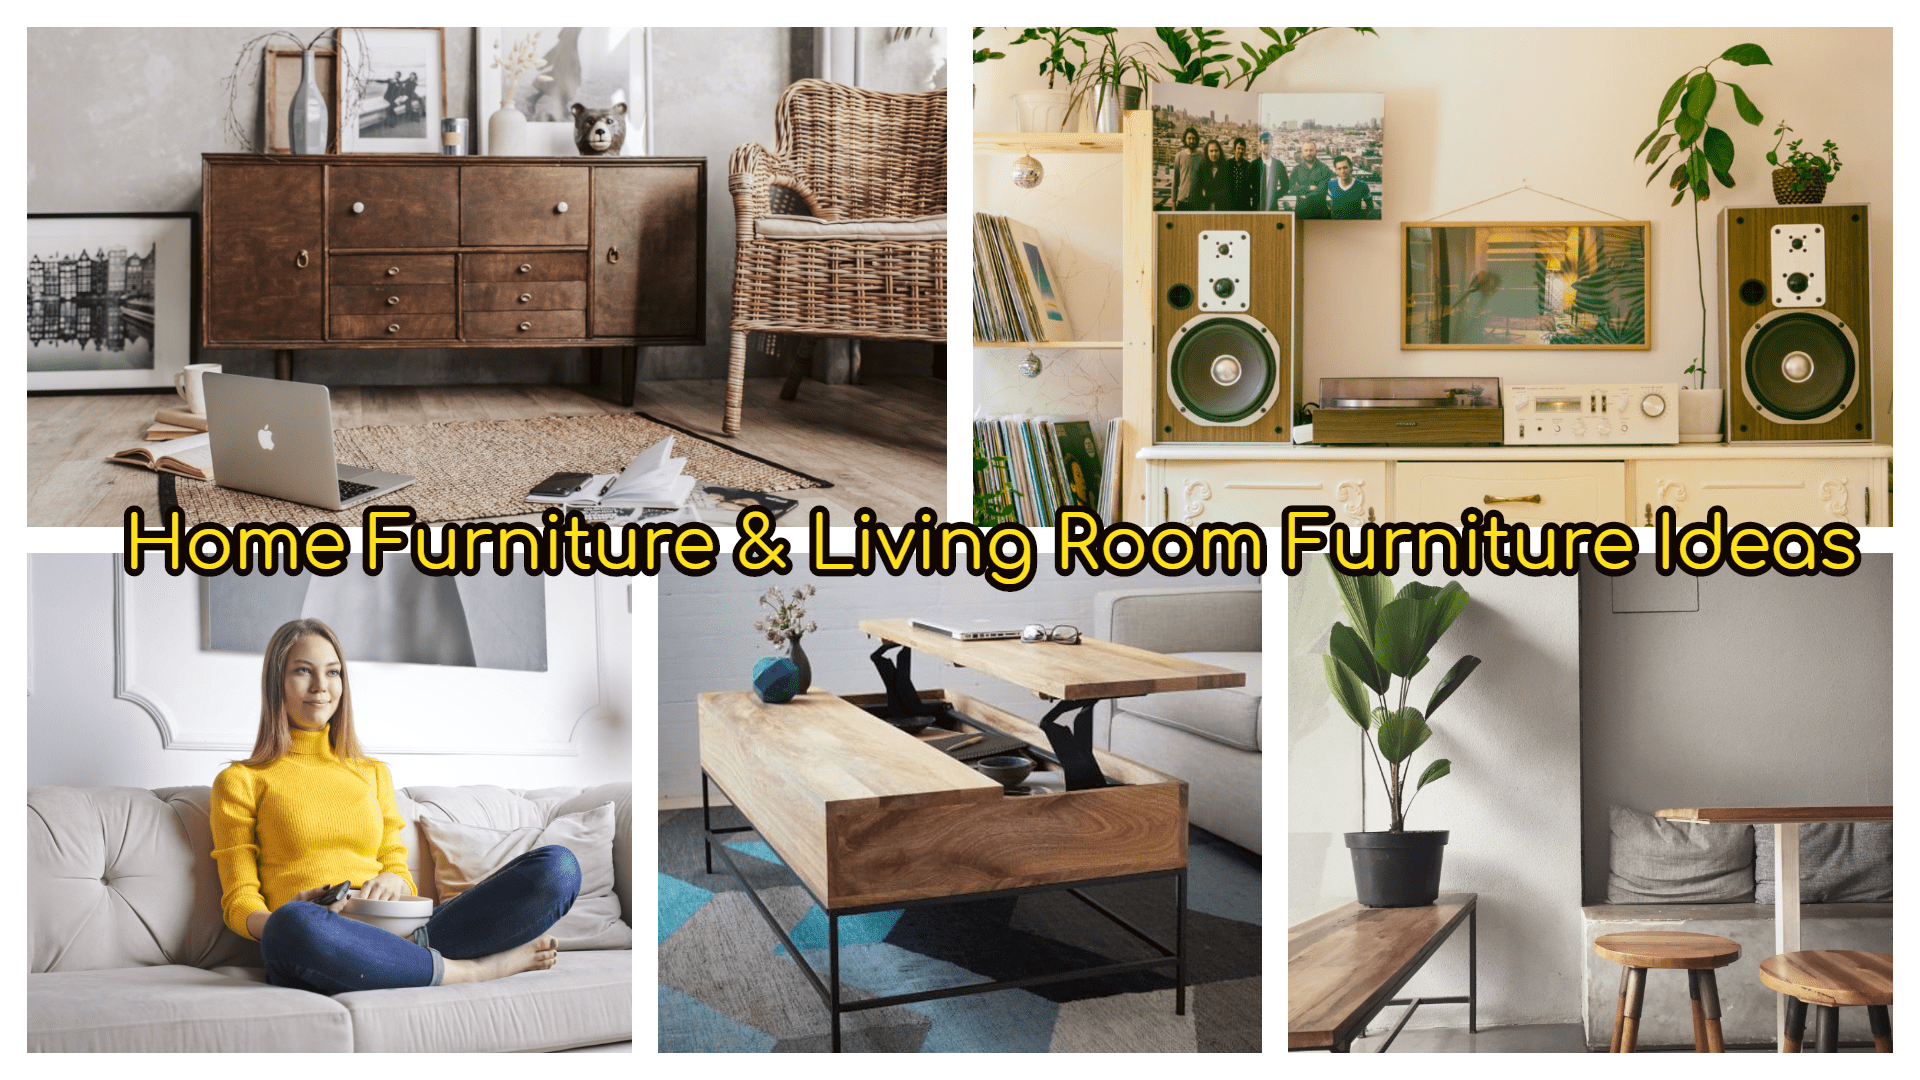 Home Furniture and Living room furniture ideas